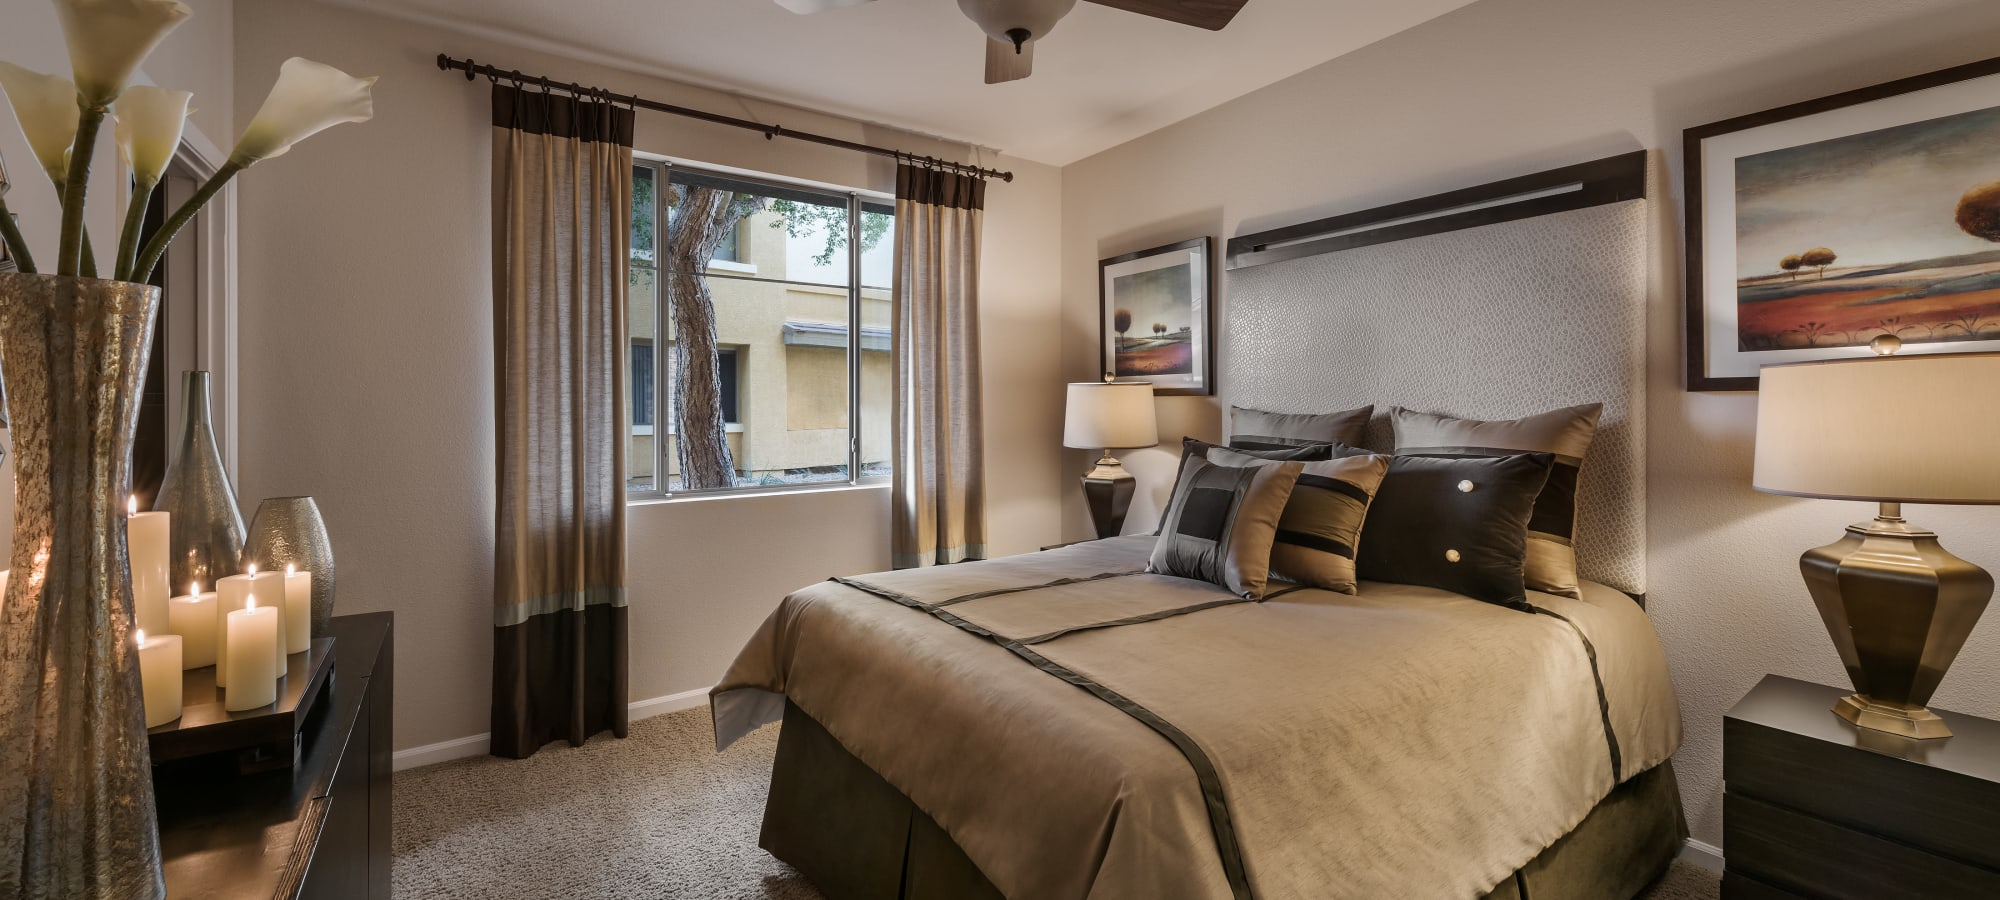 Master bedroom with a large window at Borrego at Spectrum in Gilbert, Arizona